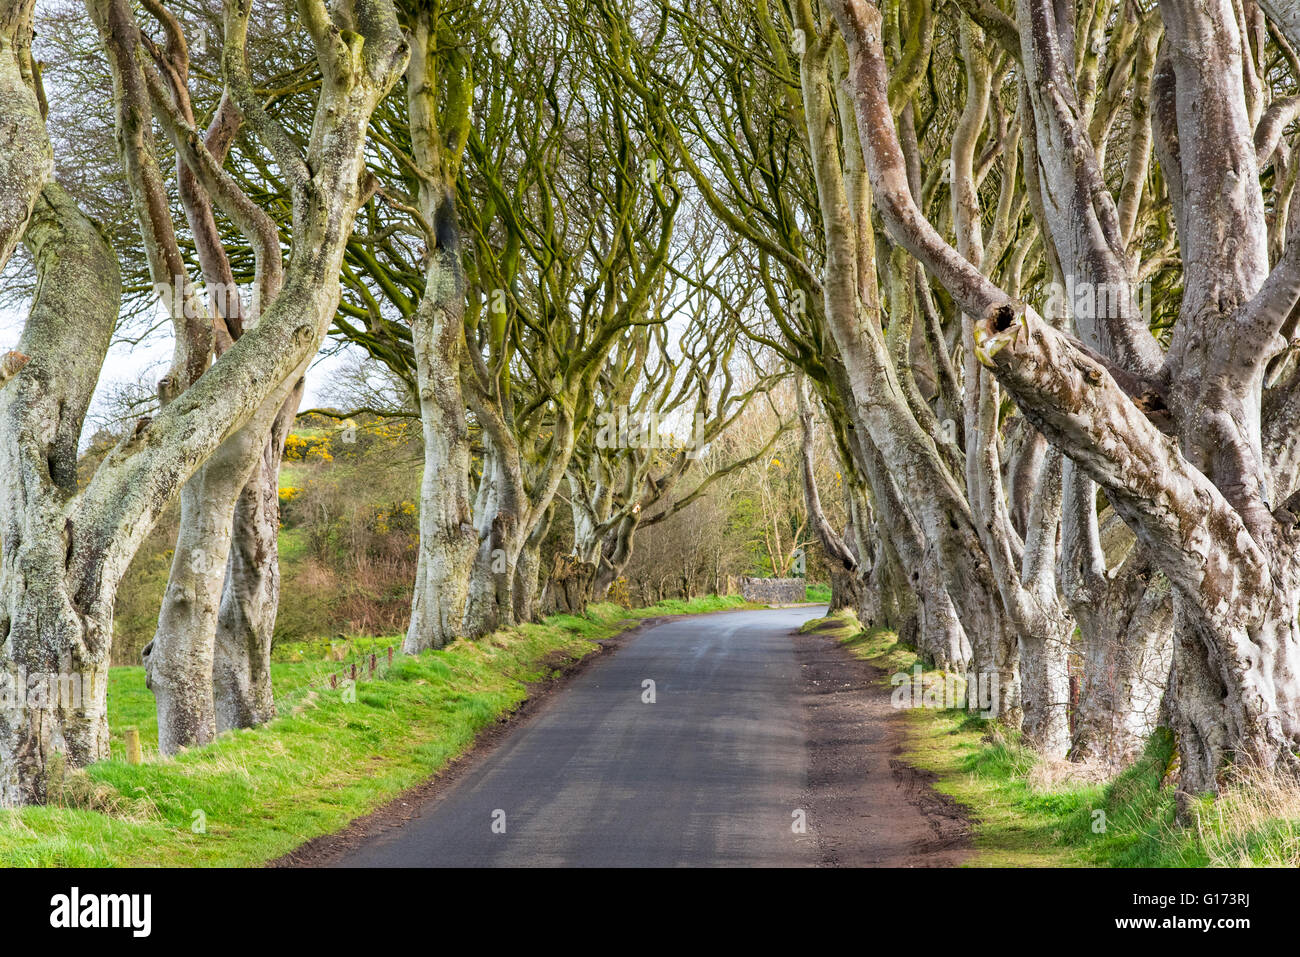 The Dark Hedges near Ballymoney, Co. Antrim, Northern Ireland.  Feautured in the Game of Thrones as the Kings Road. - Stock Image